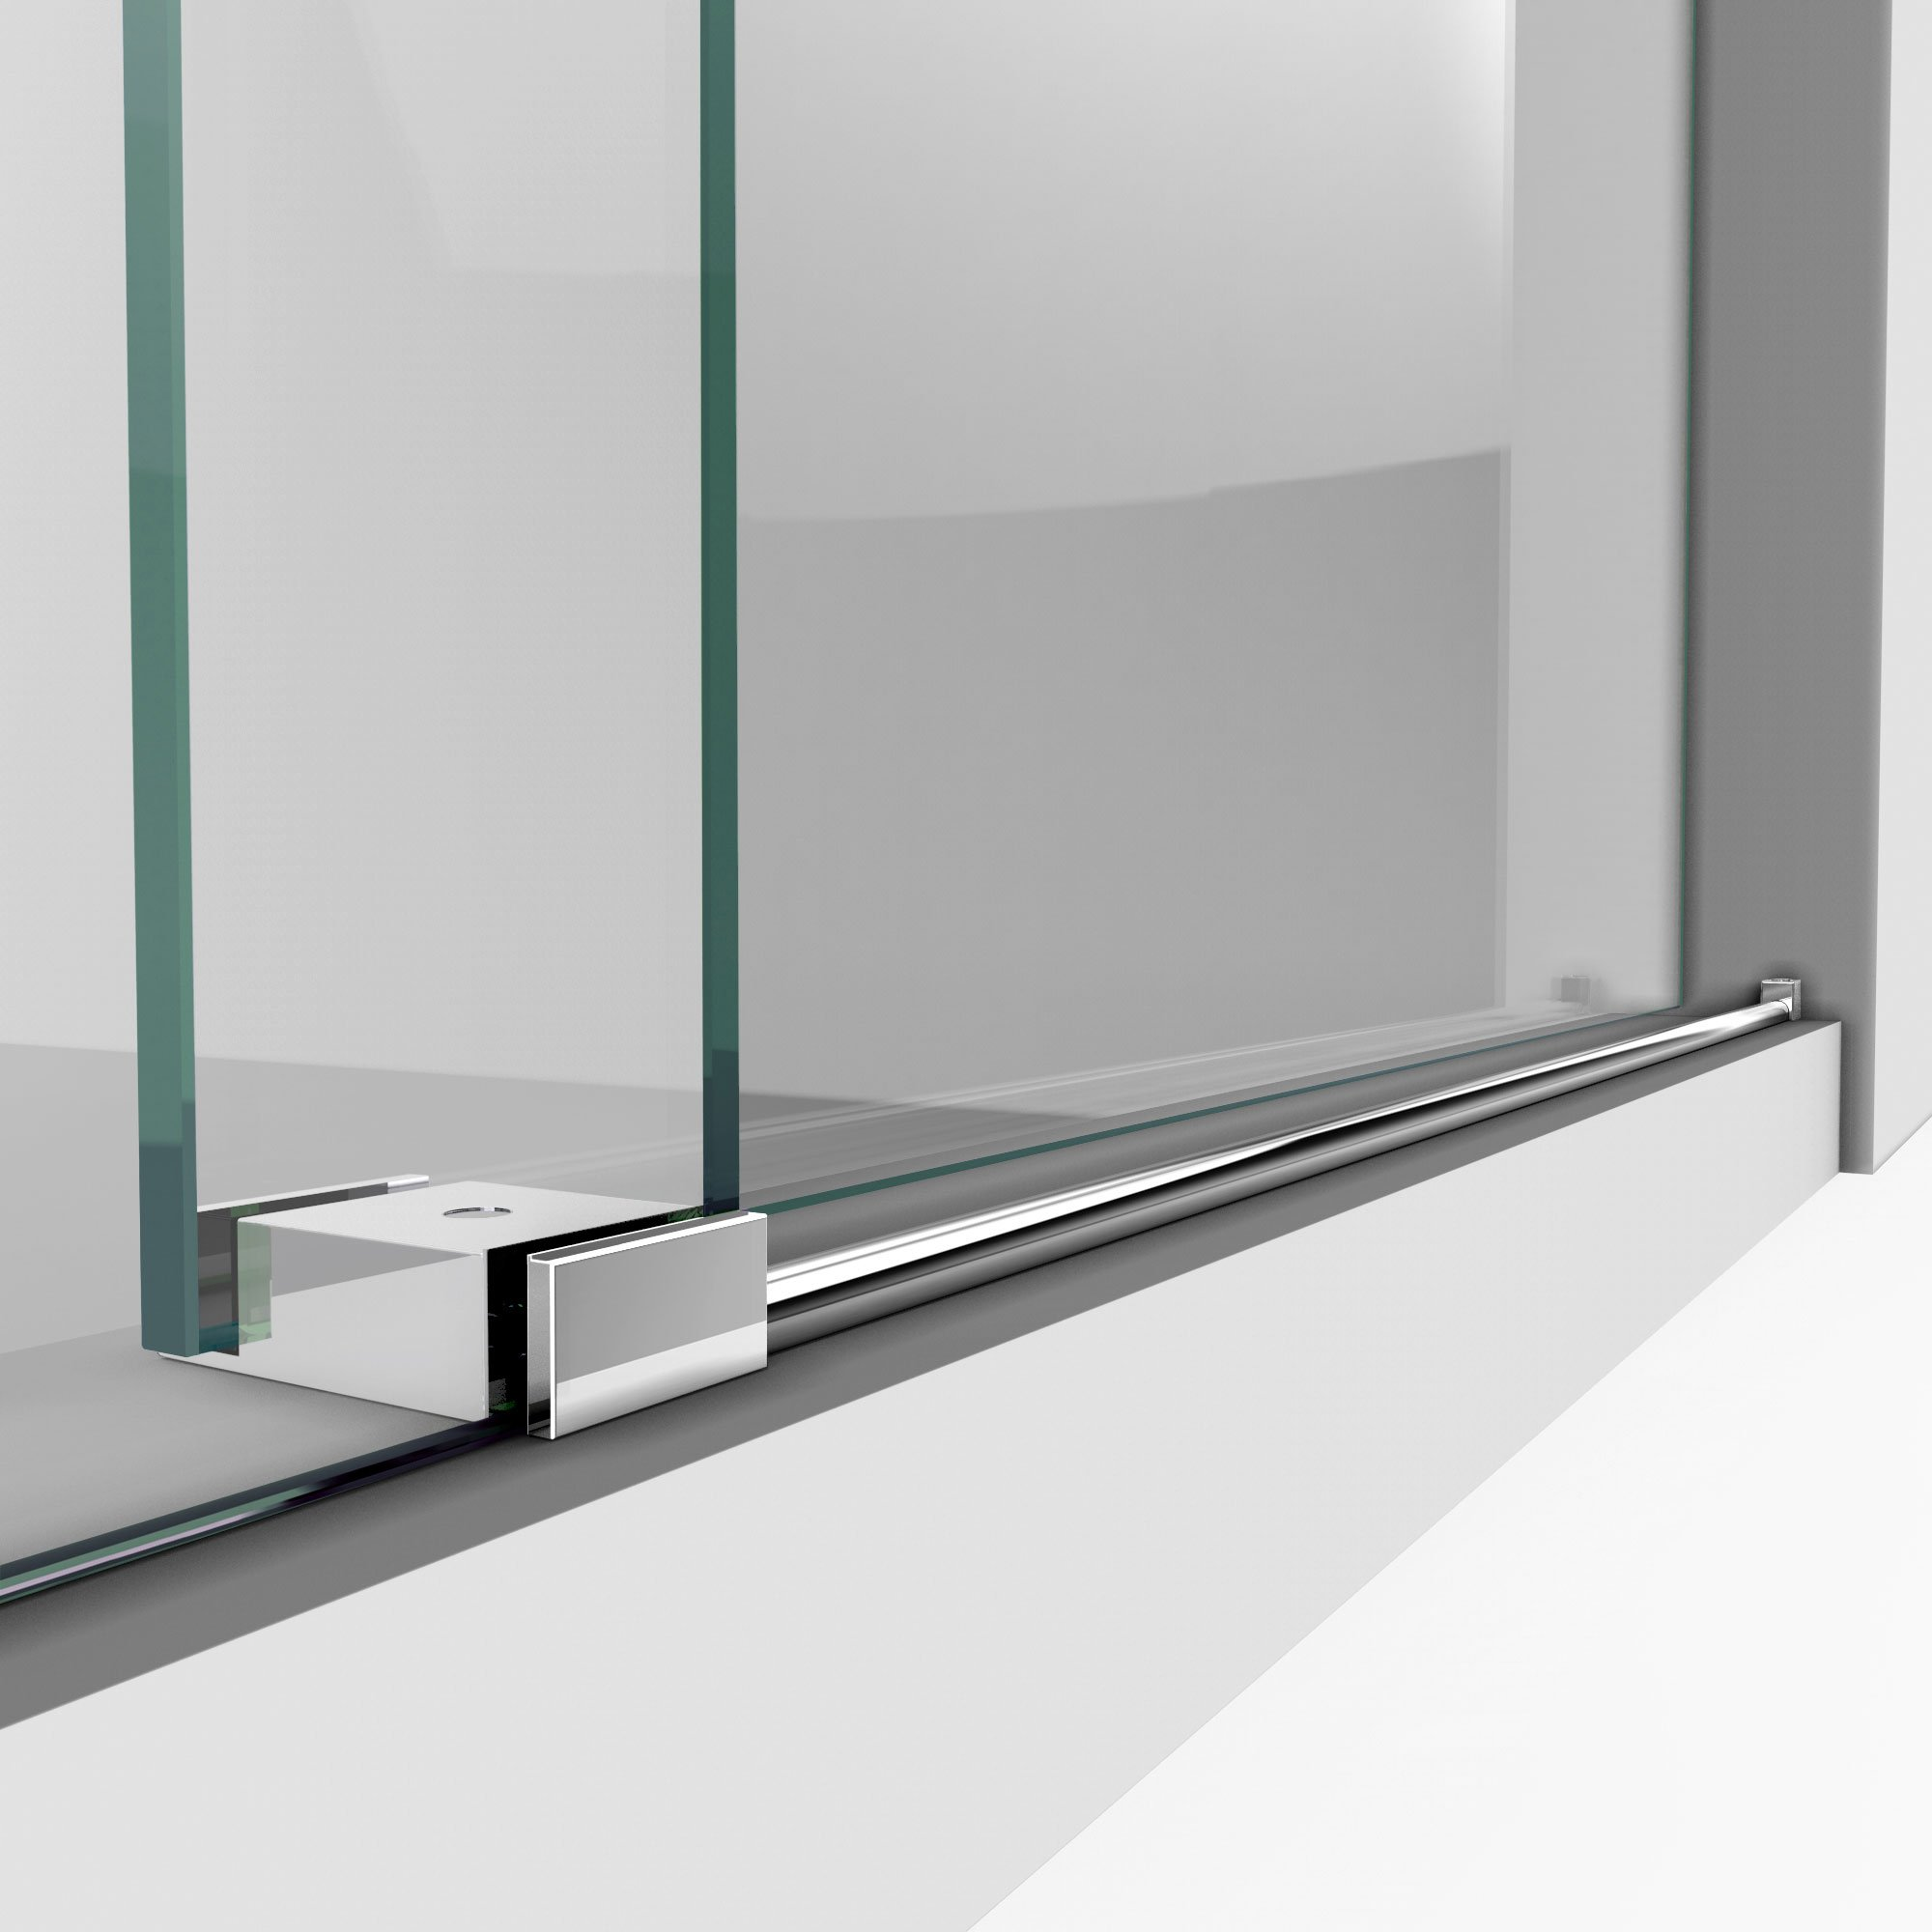 DreamLine Enigma-X 55-59 in. W x 62 in. H Fully Frameless Sliding Tub Door in Polished Stainless Steel, SHDR-61606210-08 by DreamLine (Image #15)